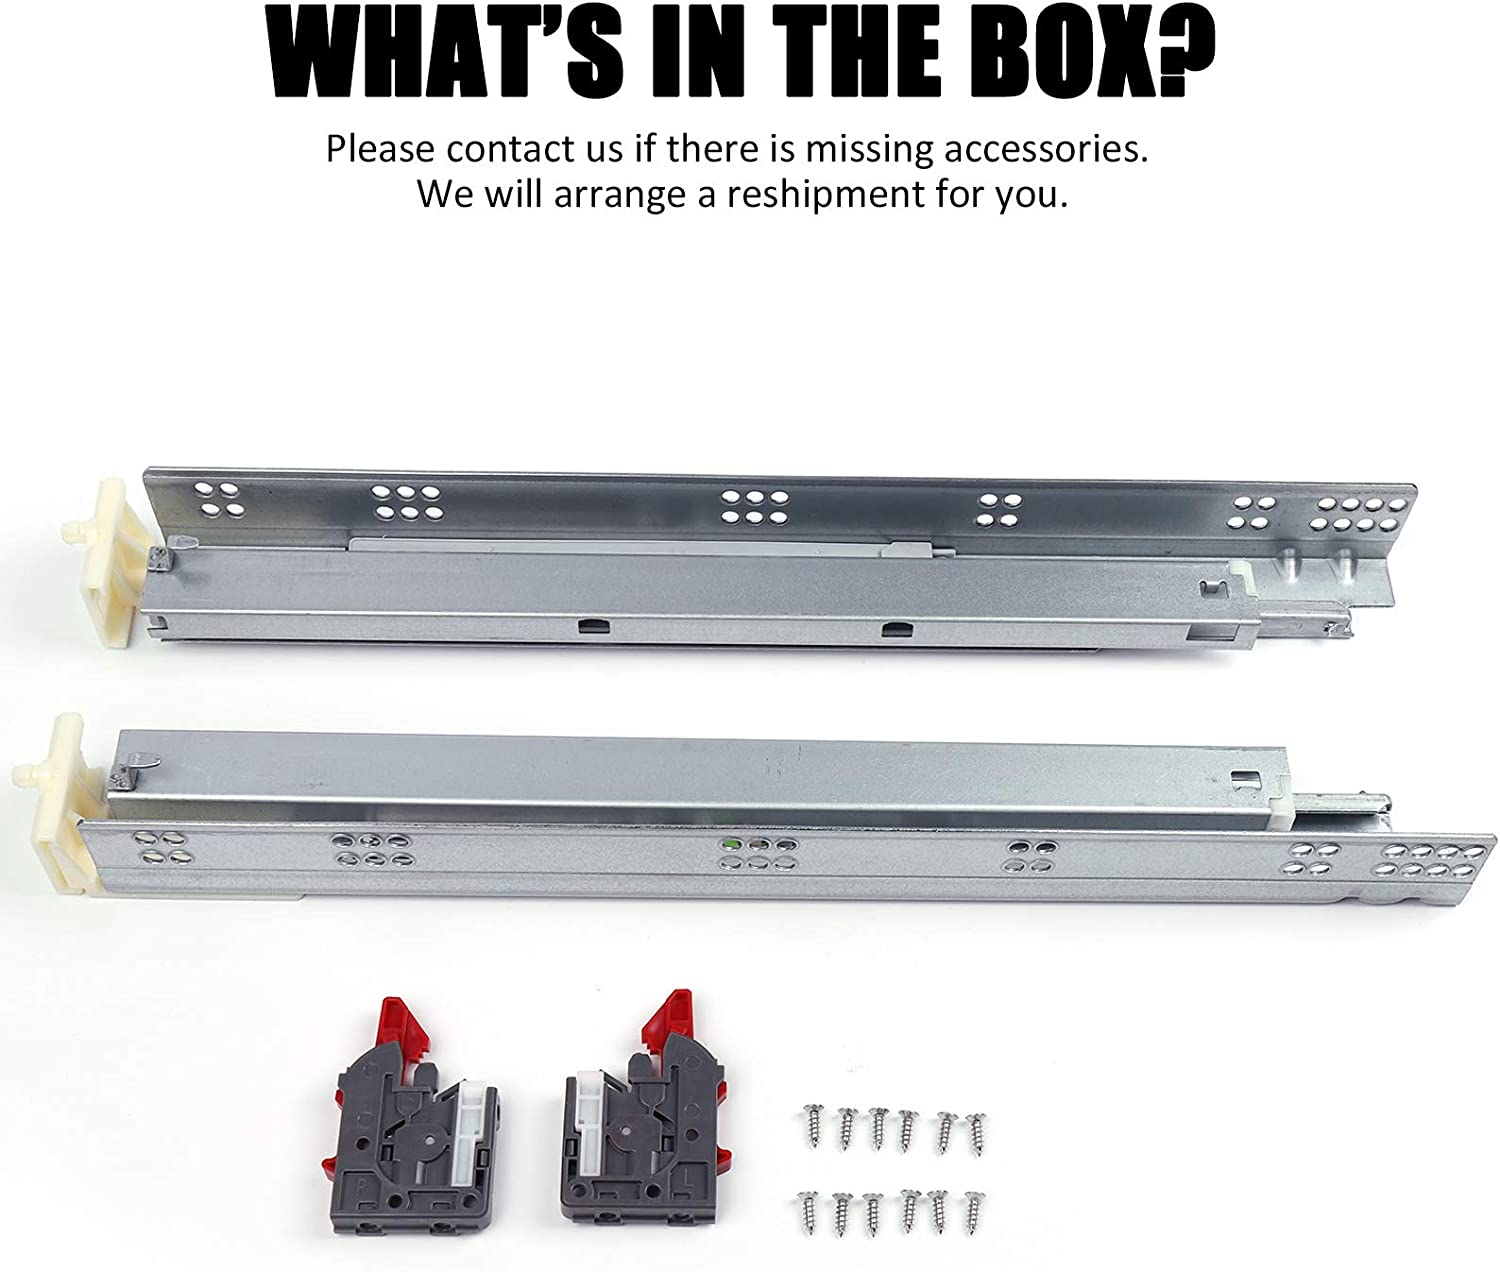 5 Pair=10 Pcs Undermount Drawer Runners-Heavy Duty 85lb Capacity Rails-Mounting Brackets Included 5 Pair 18 inch Soft Closing Full Extension Drawer Slides